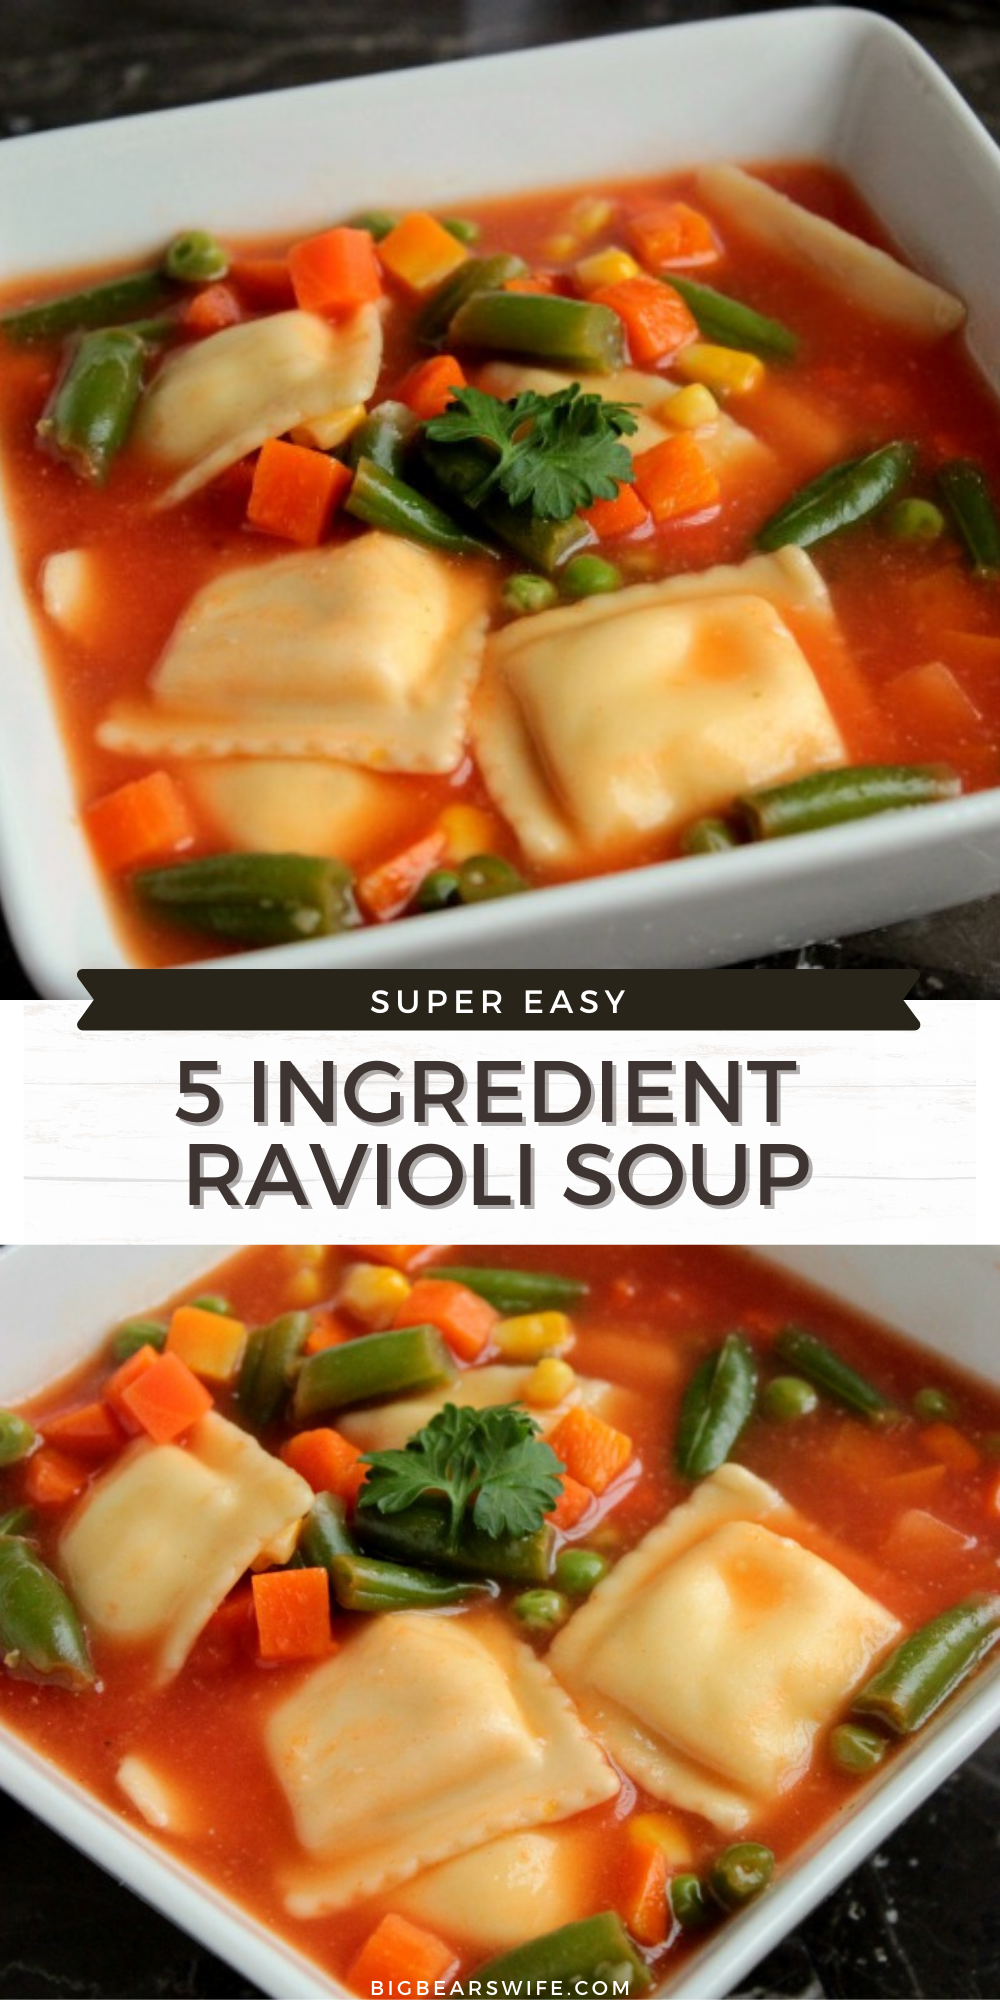 5 Ingredient Ravioli Soup is just that, ravioli soup that's simply made with only 5 ingredients. This super easy soup recipe is great for winter nights or fall evenings. It's a super easy dinner recipes that is super quick to make.